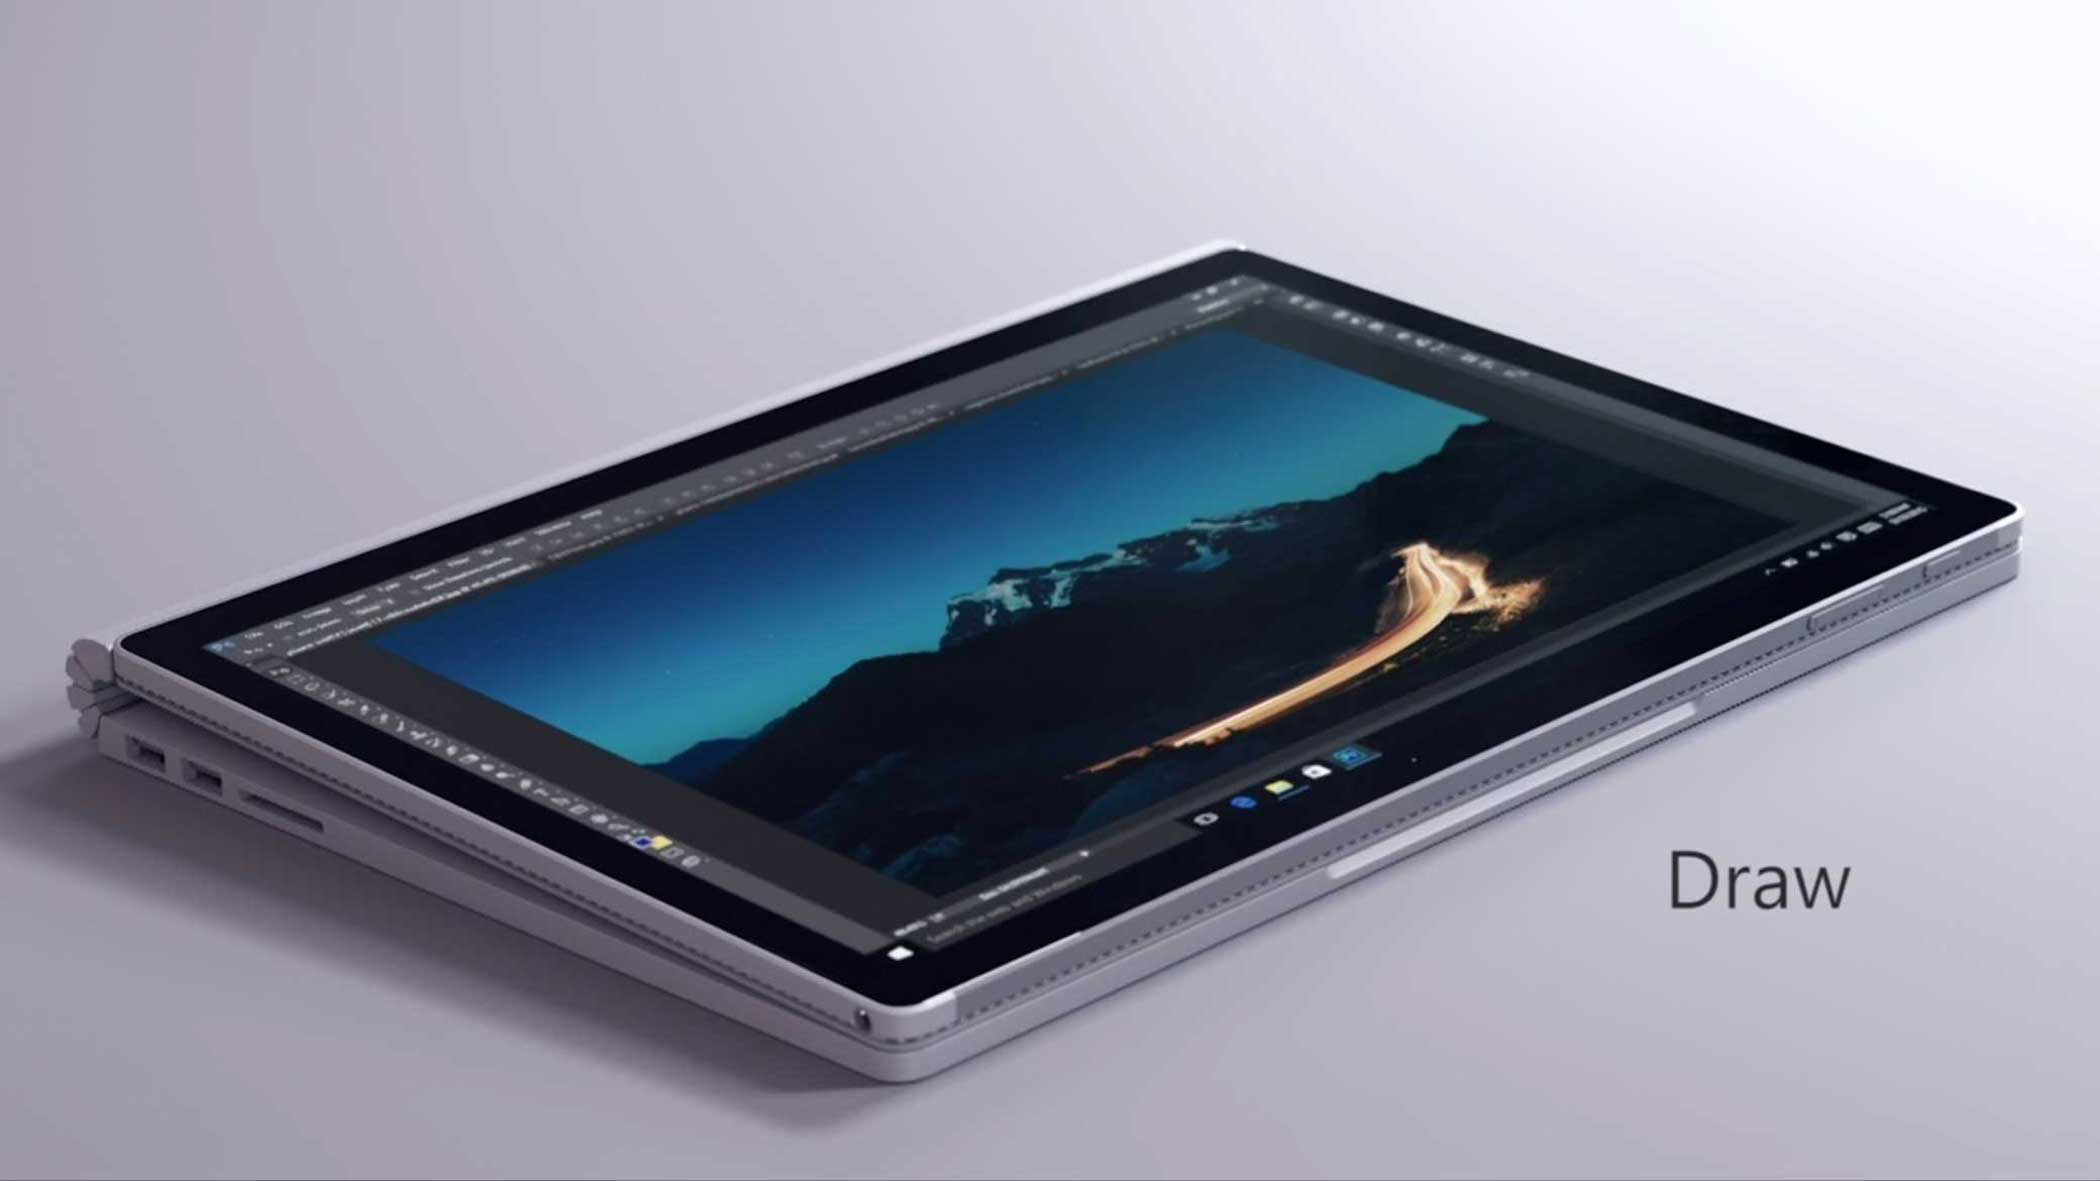 Allowing the screen to flip or fully detach.